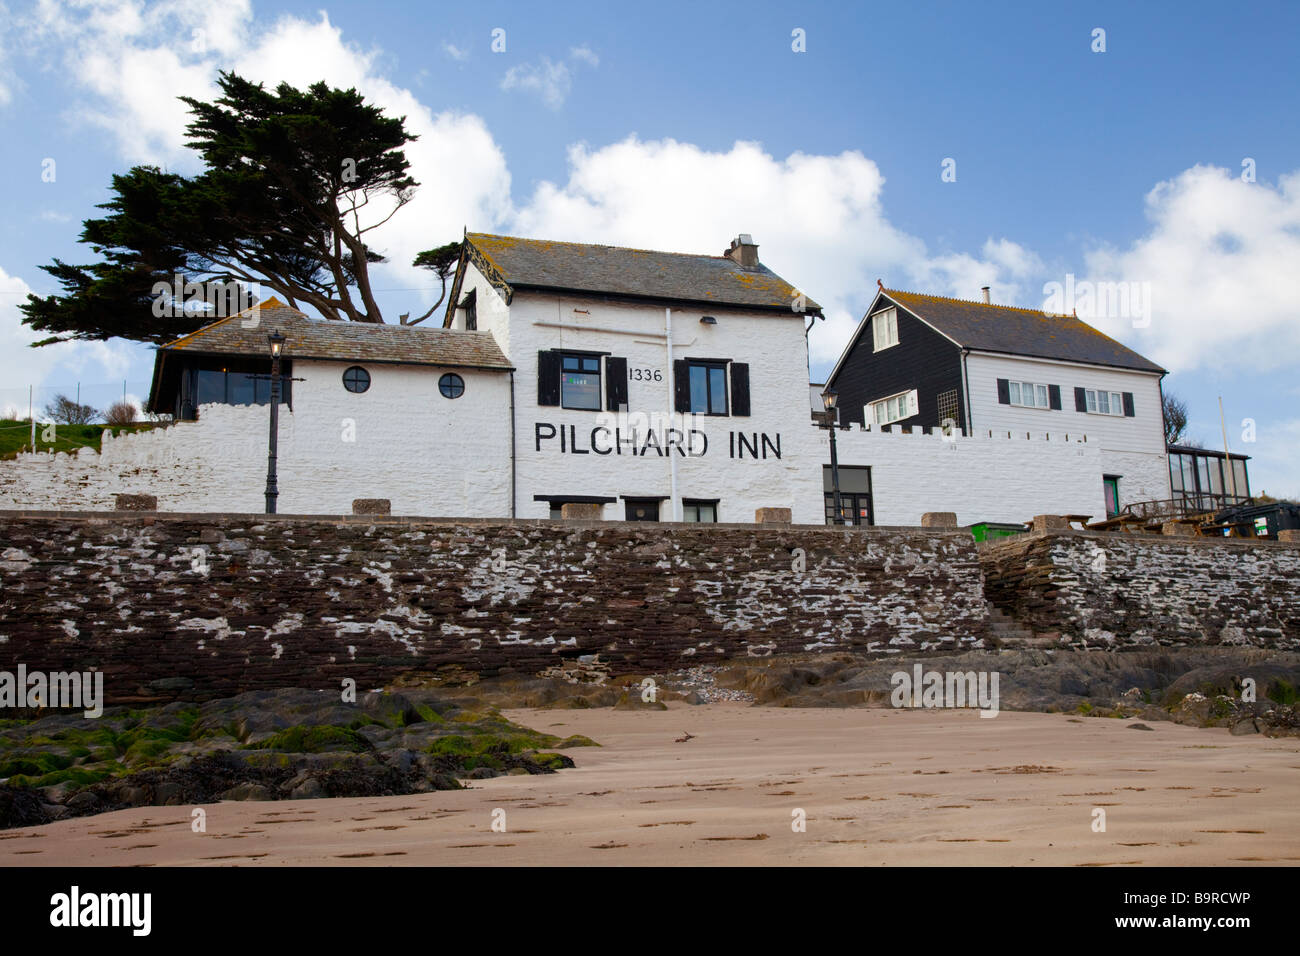 The Pilchard Inn, Burgh Island, Devon - Stock Image